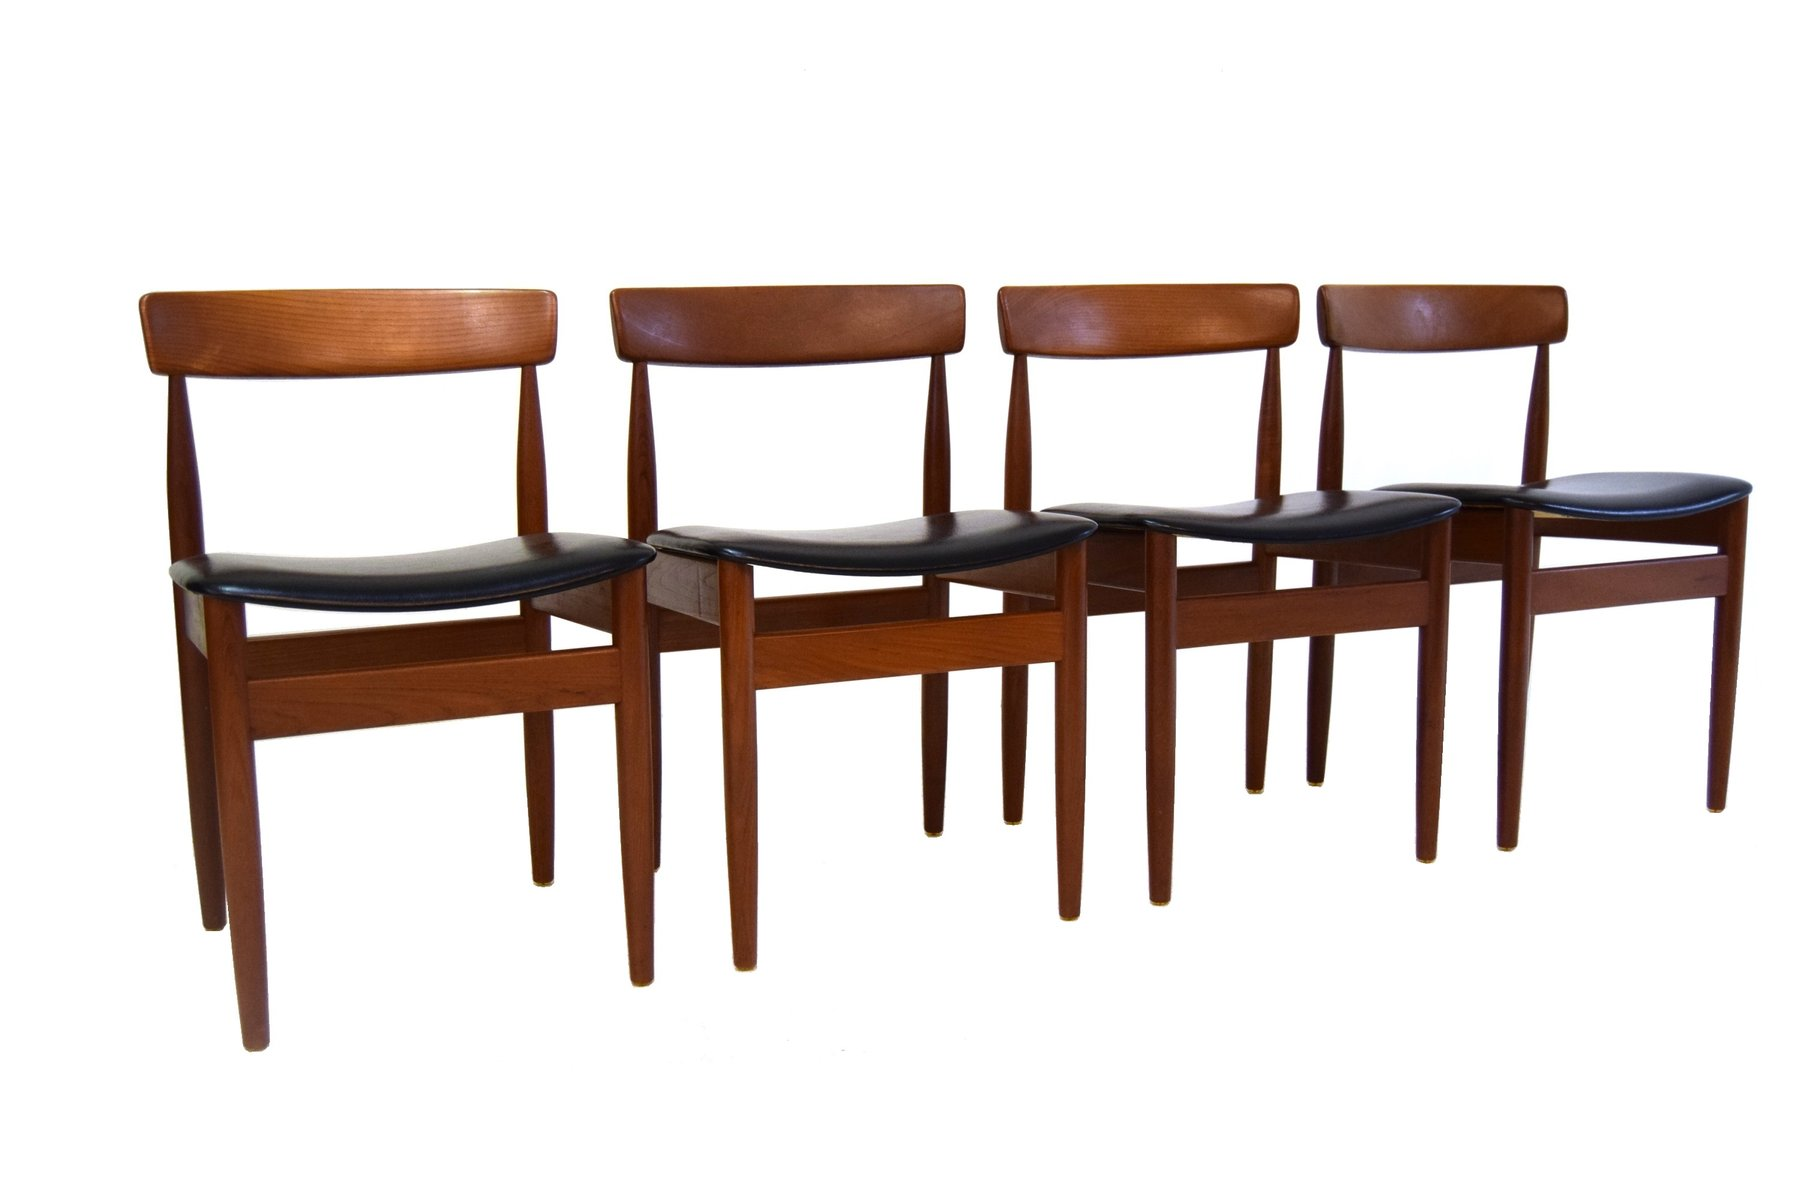 mid century danish dining chairs 1960s set of 4 for sale at pamono